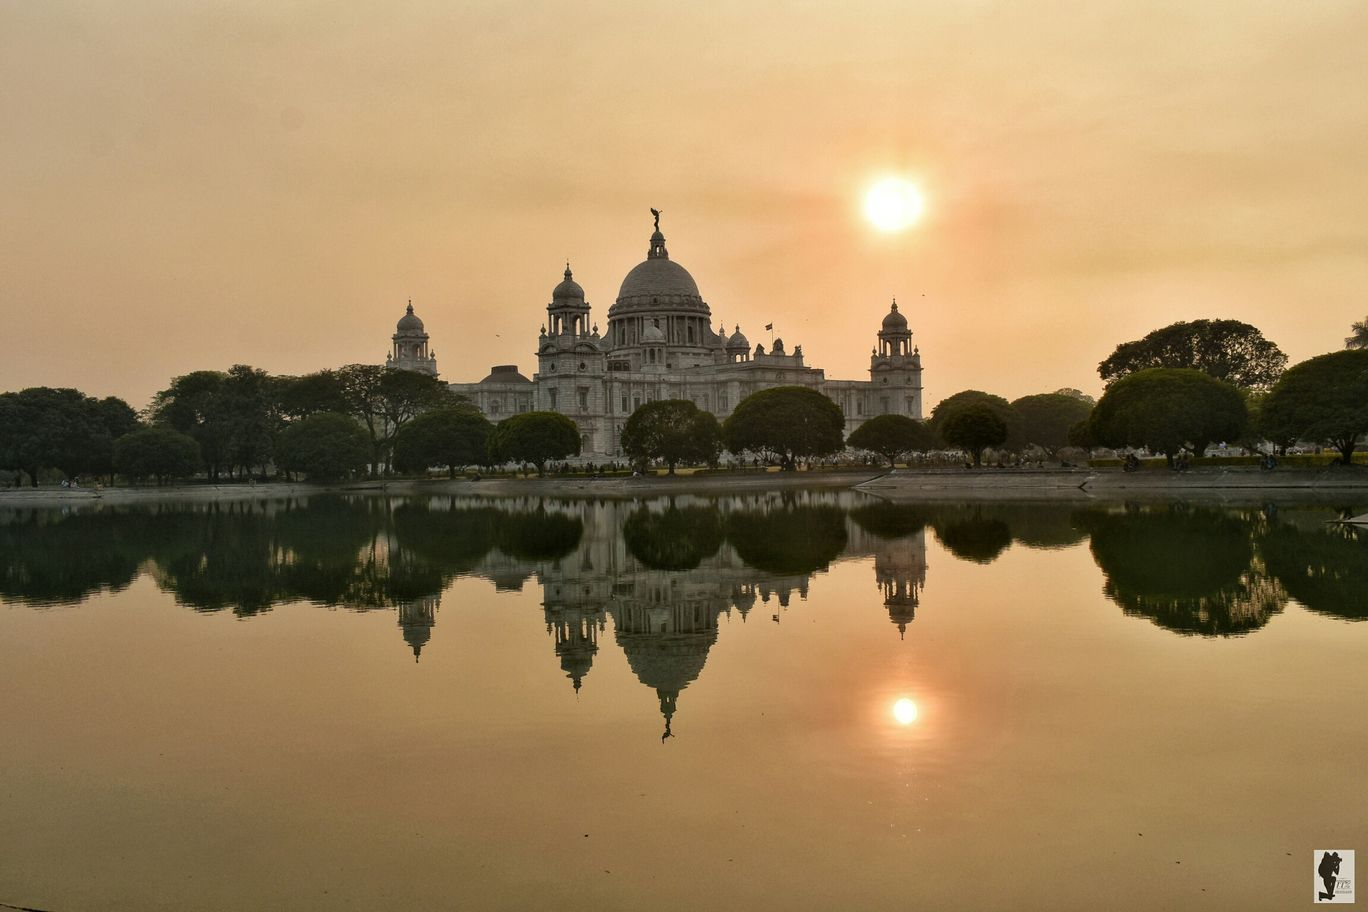 Photo of Victoria Memorial By Pratyush Mund